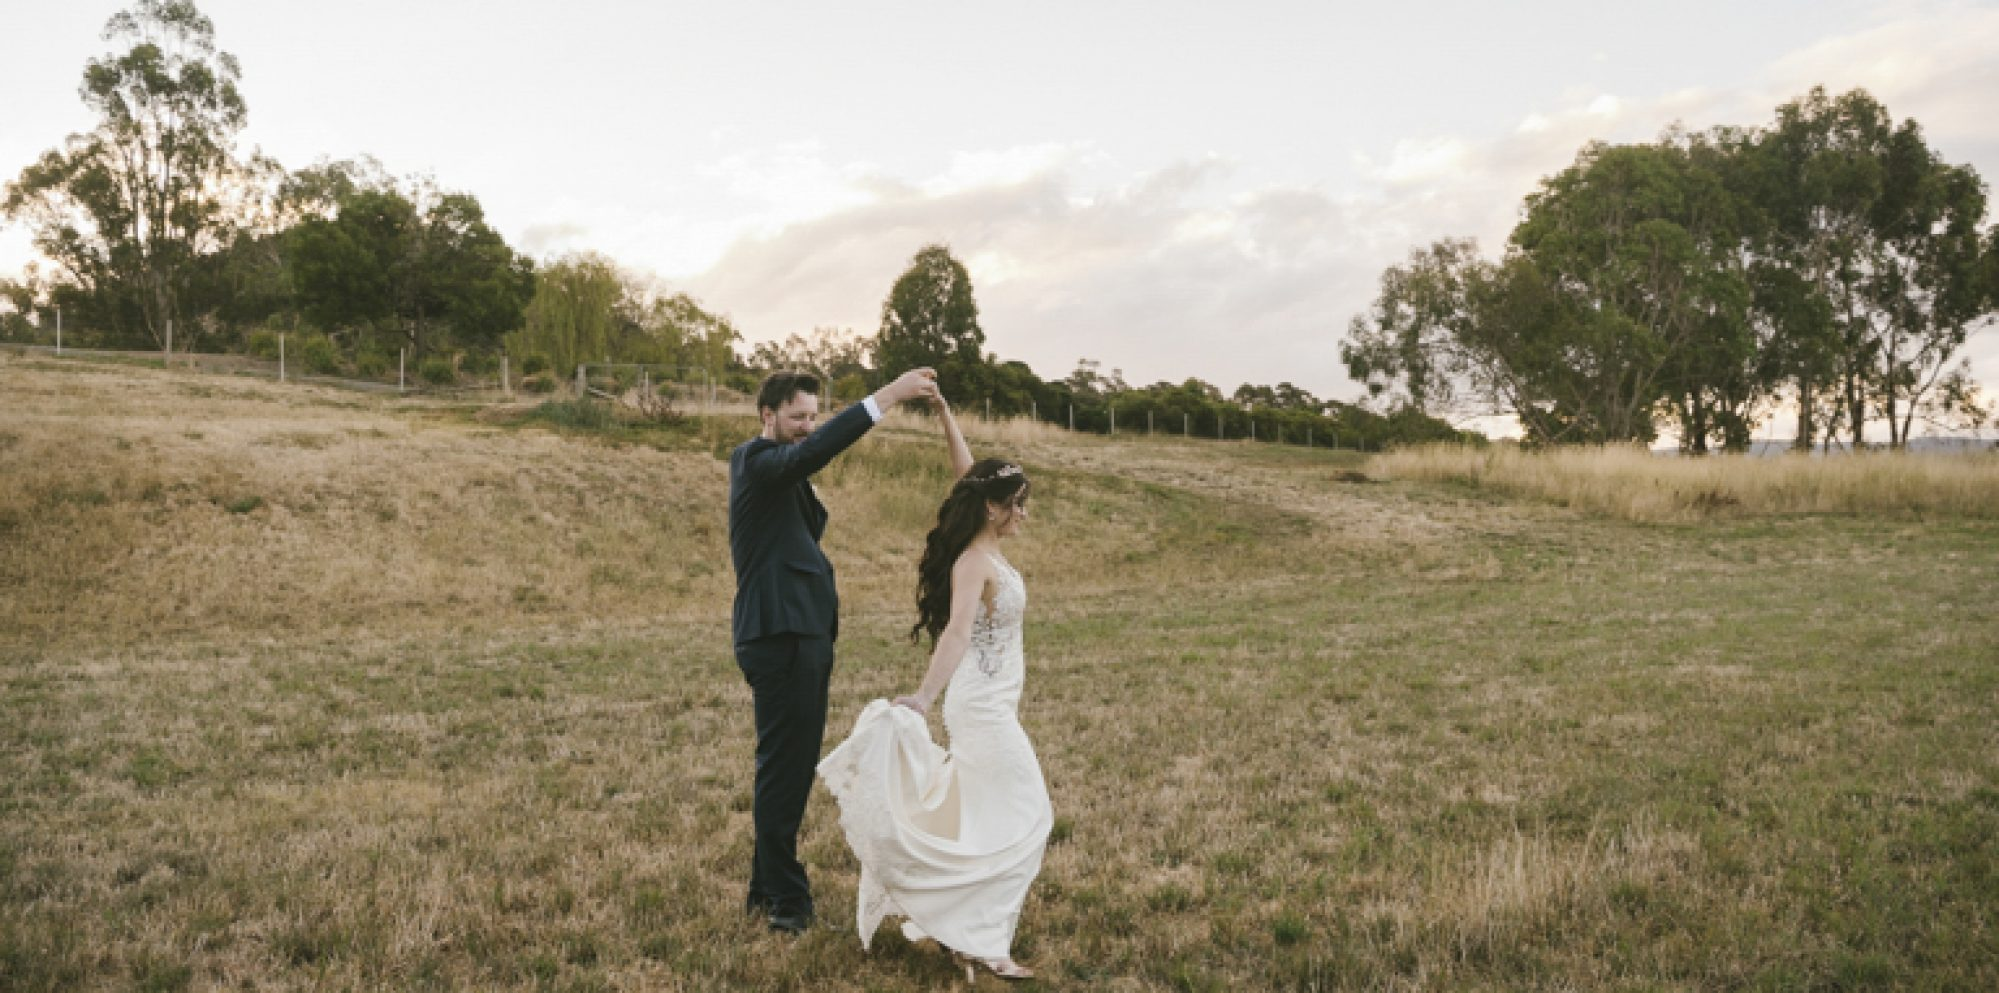 Protected: jessica &ben @ flowerdales wedding photogrpahy